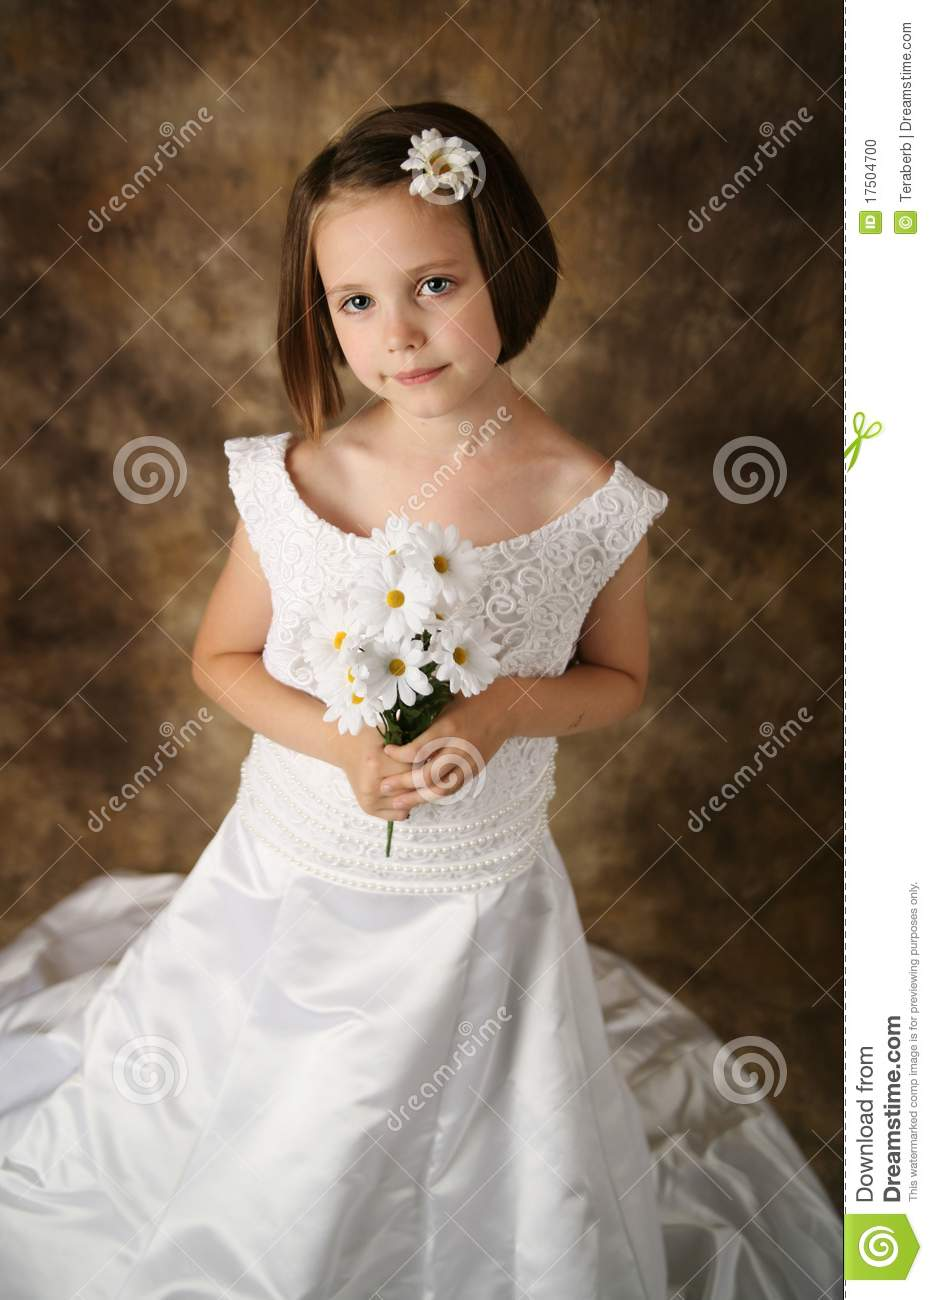 petite fille essayant sur la robe de mariage de la maman photo stock image du regarder. Black Bedroom Furniture Sets. Home Design Ideas